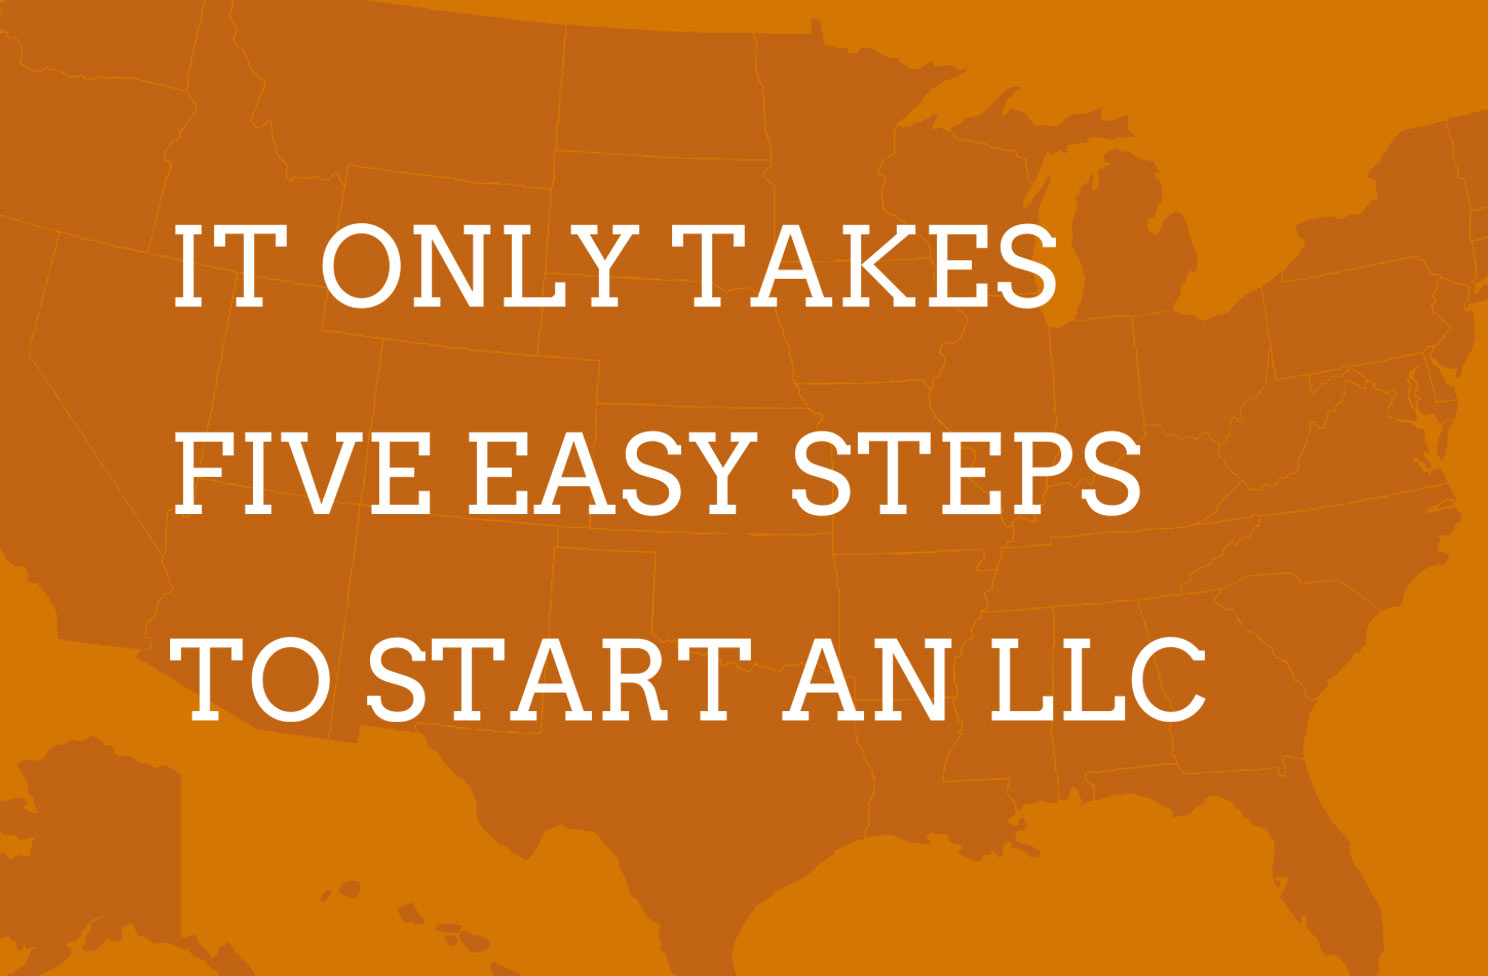 Form An Llc In Maryland Online